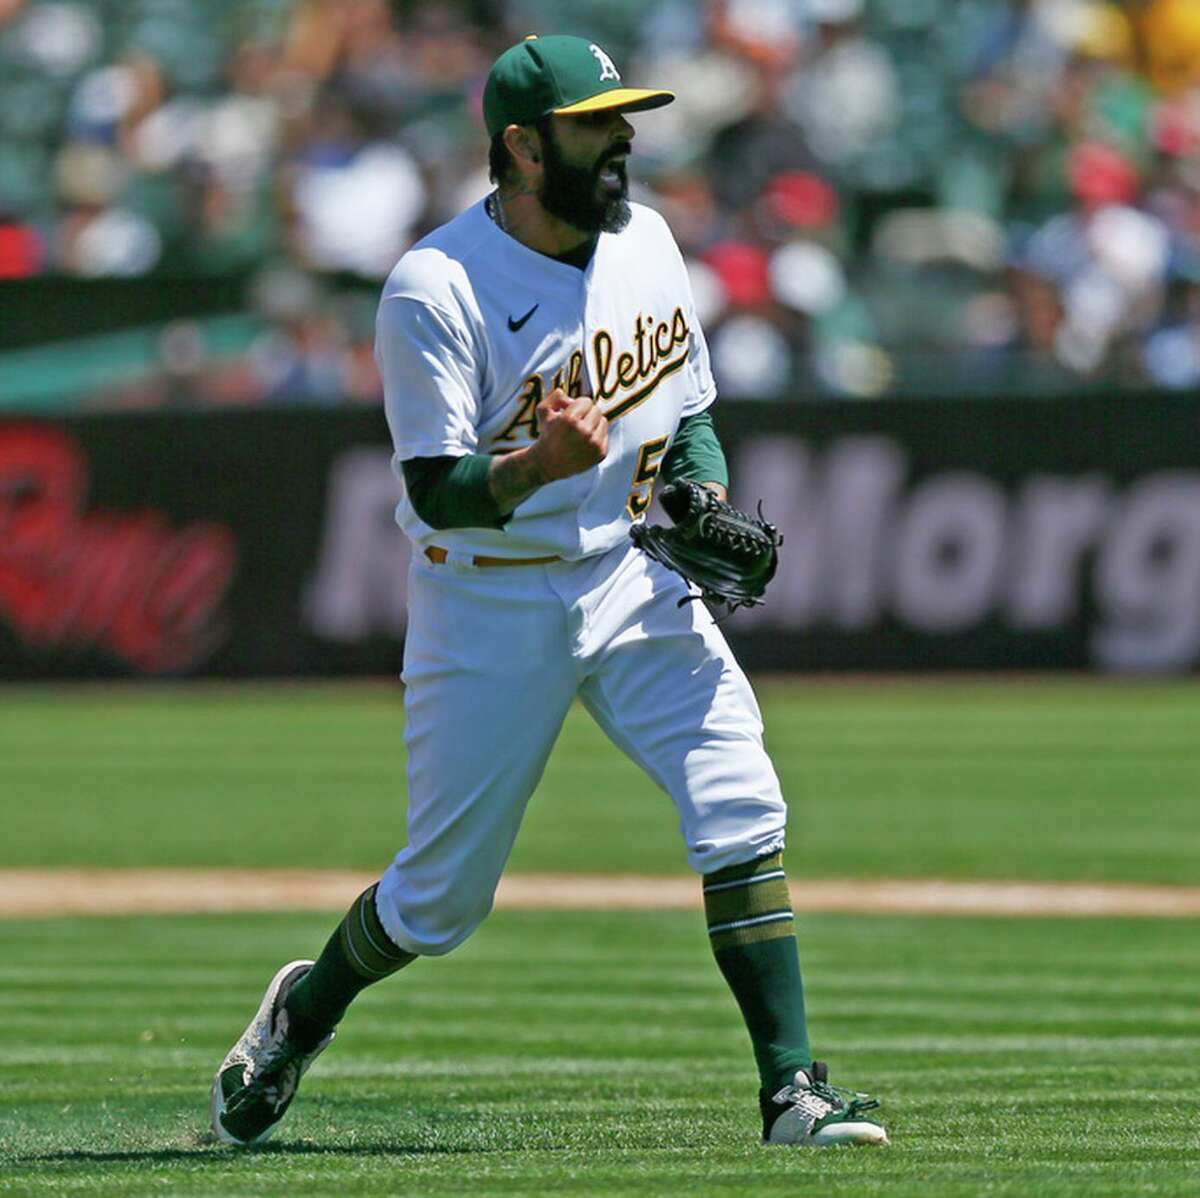 A's reliever Sergio Romo entered Thursday with a 3.93 ERA, down from 7.63 on May 23.